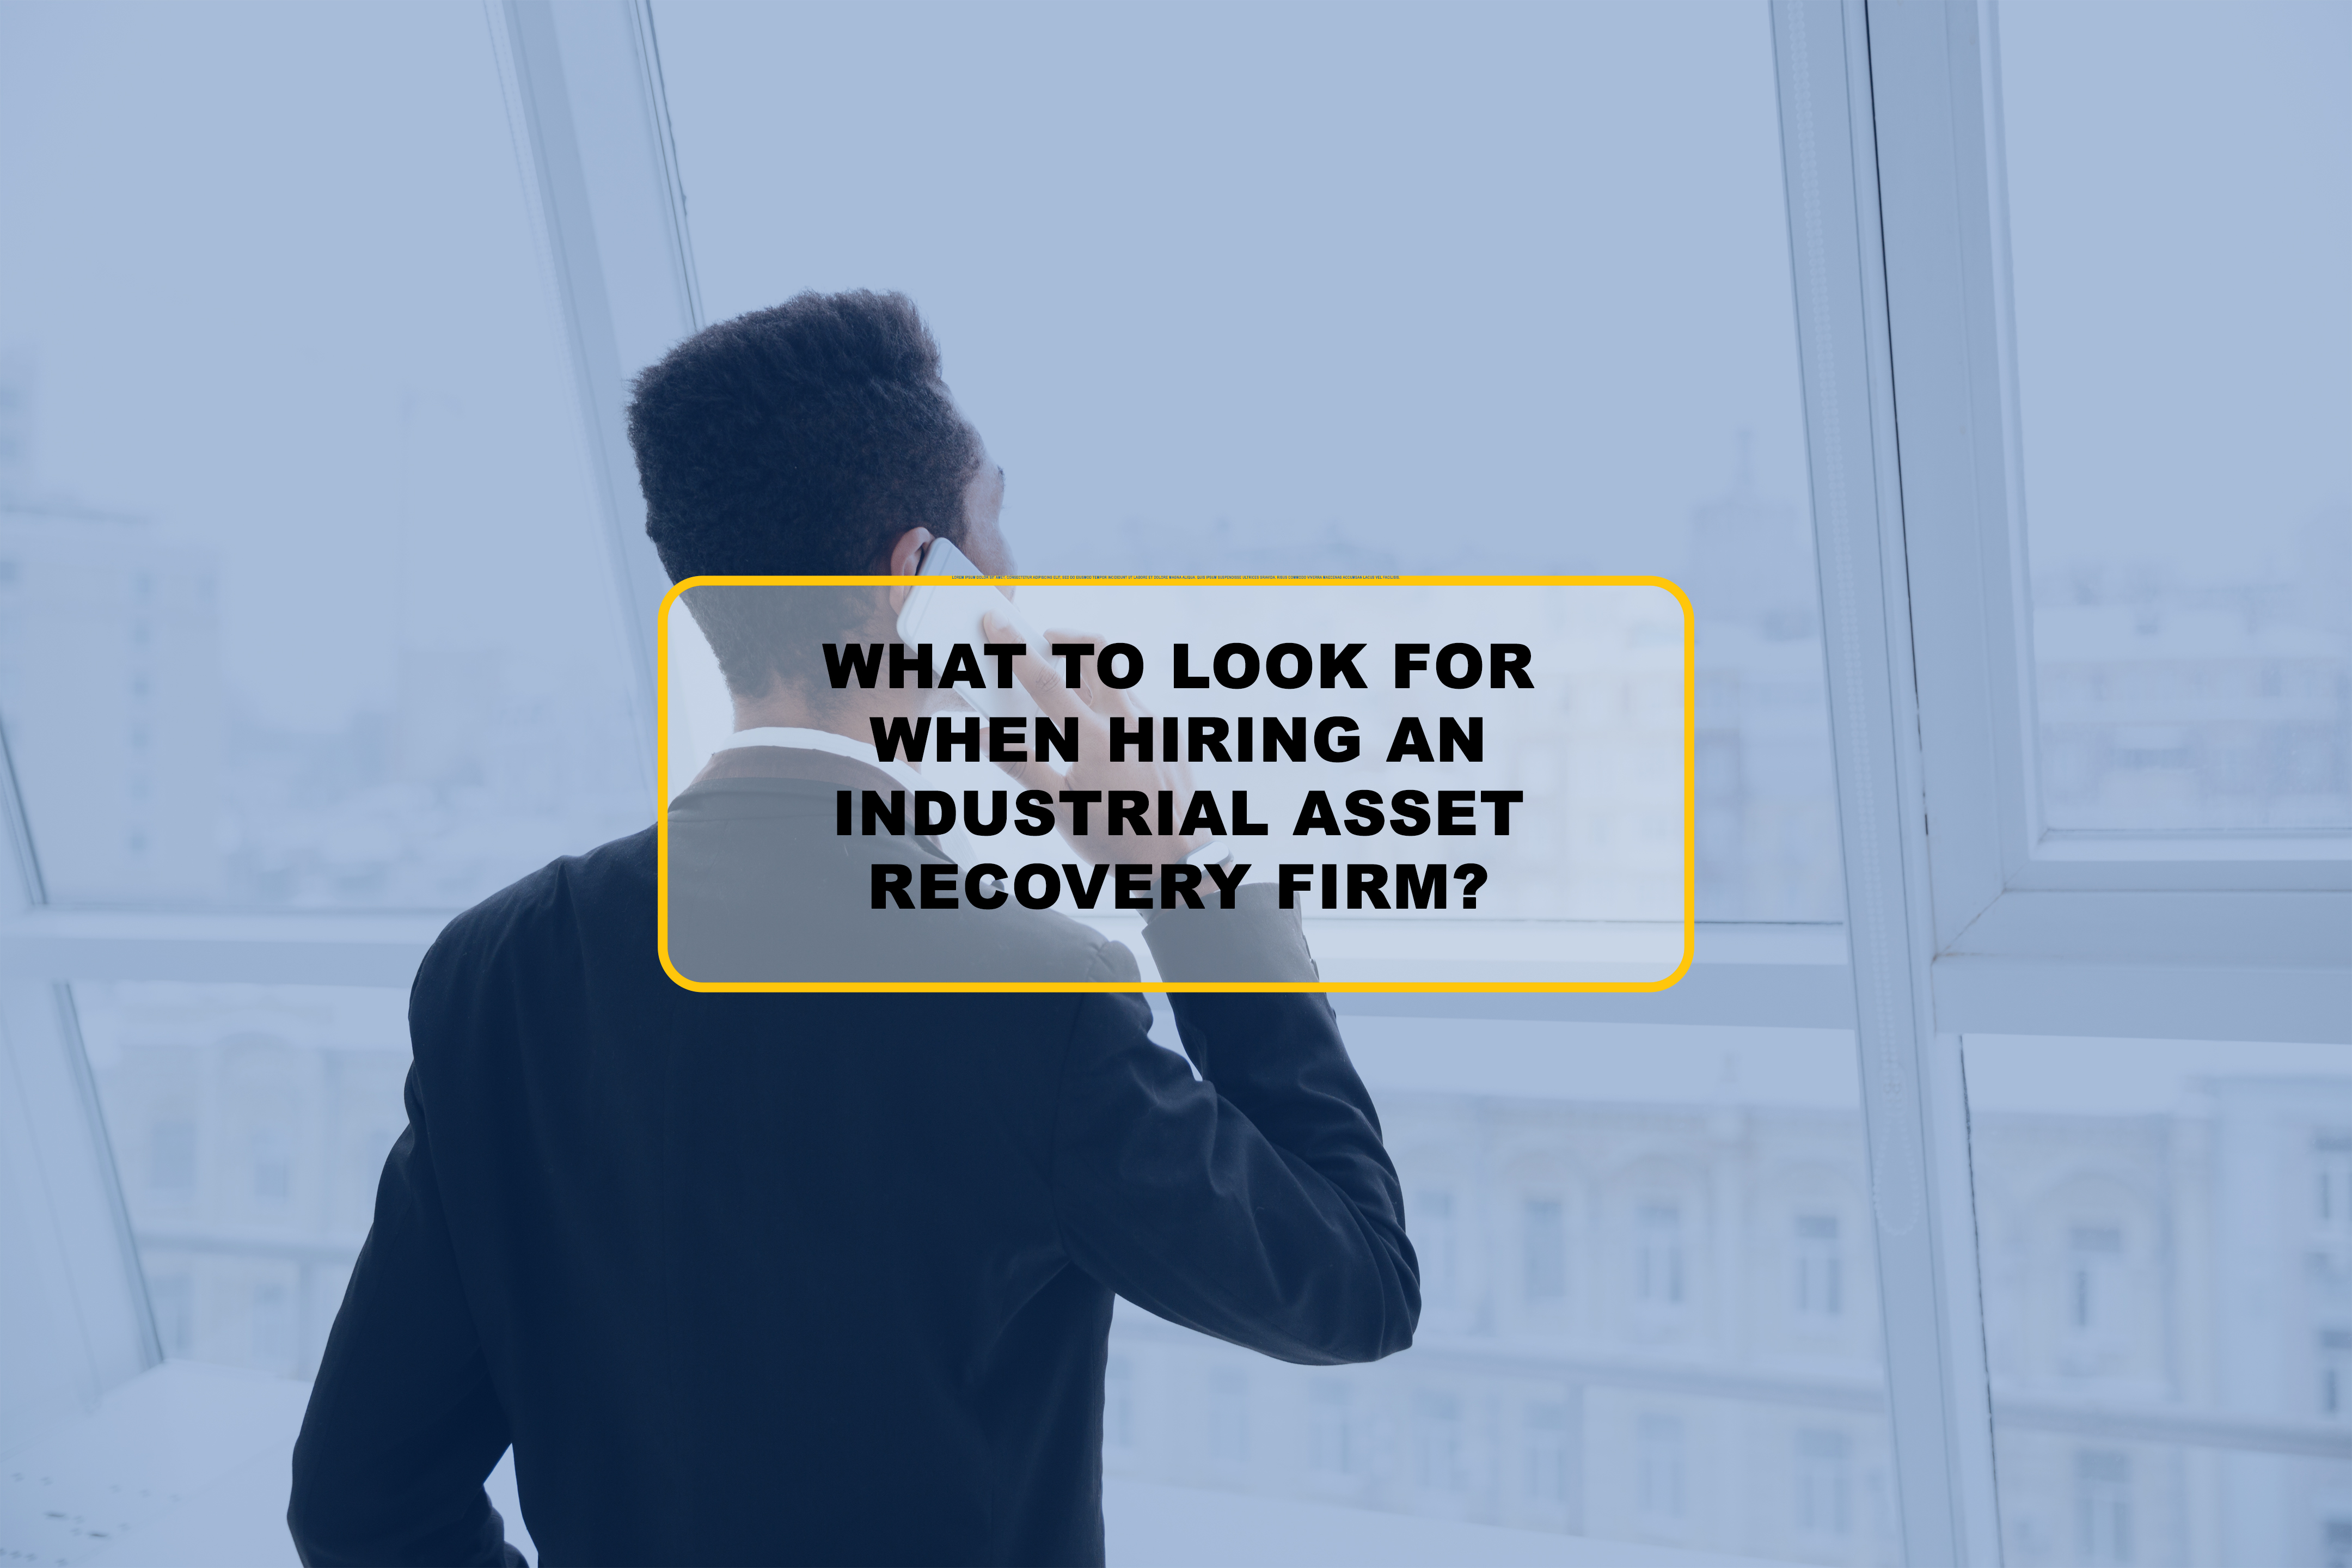 What to Look for When Hiring An Industrial Asset Recovery Firm?